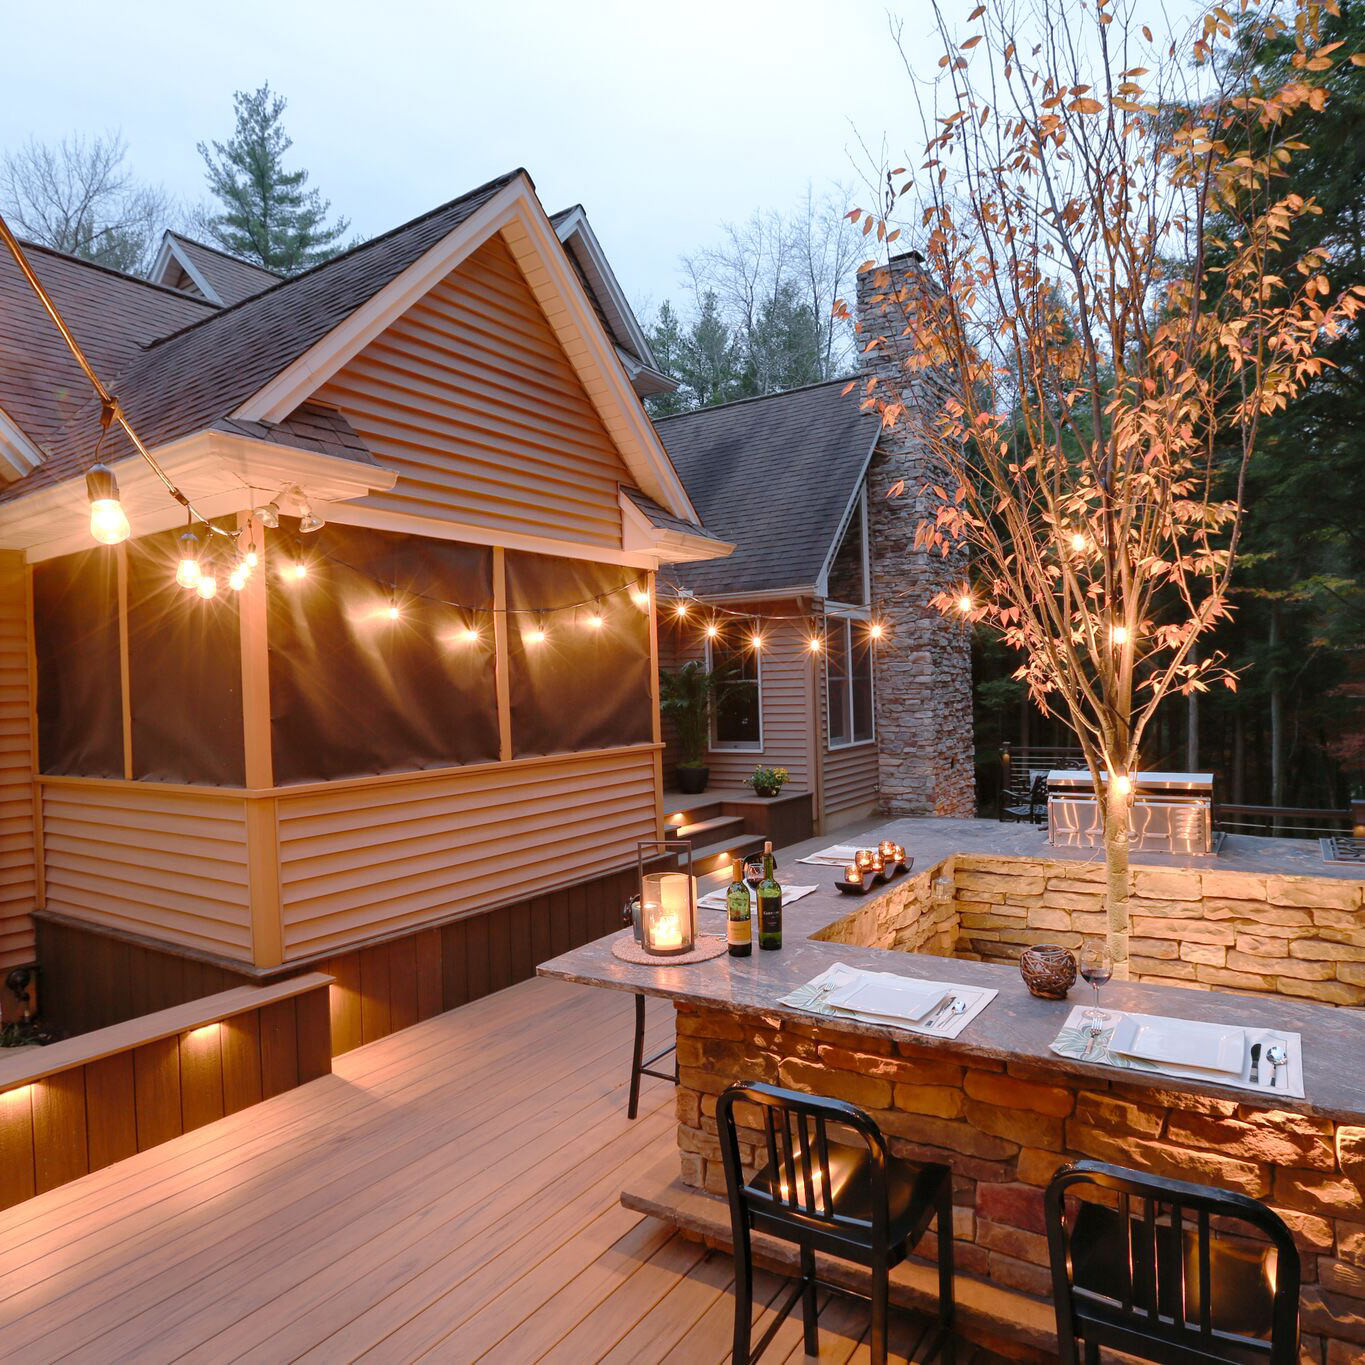 Outdoor dining has never looked so good!  Find out more about this MasterPLAN project that blends directly into nature!